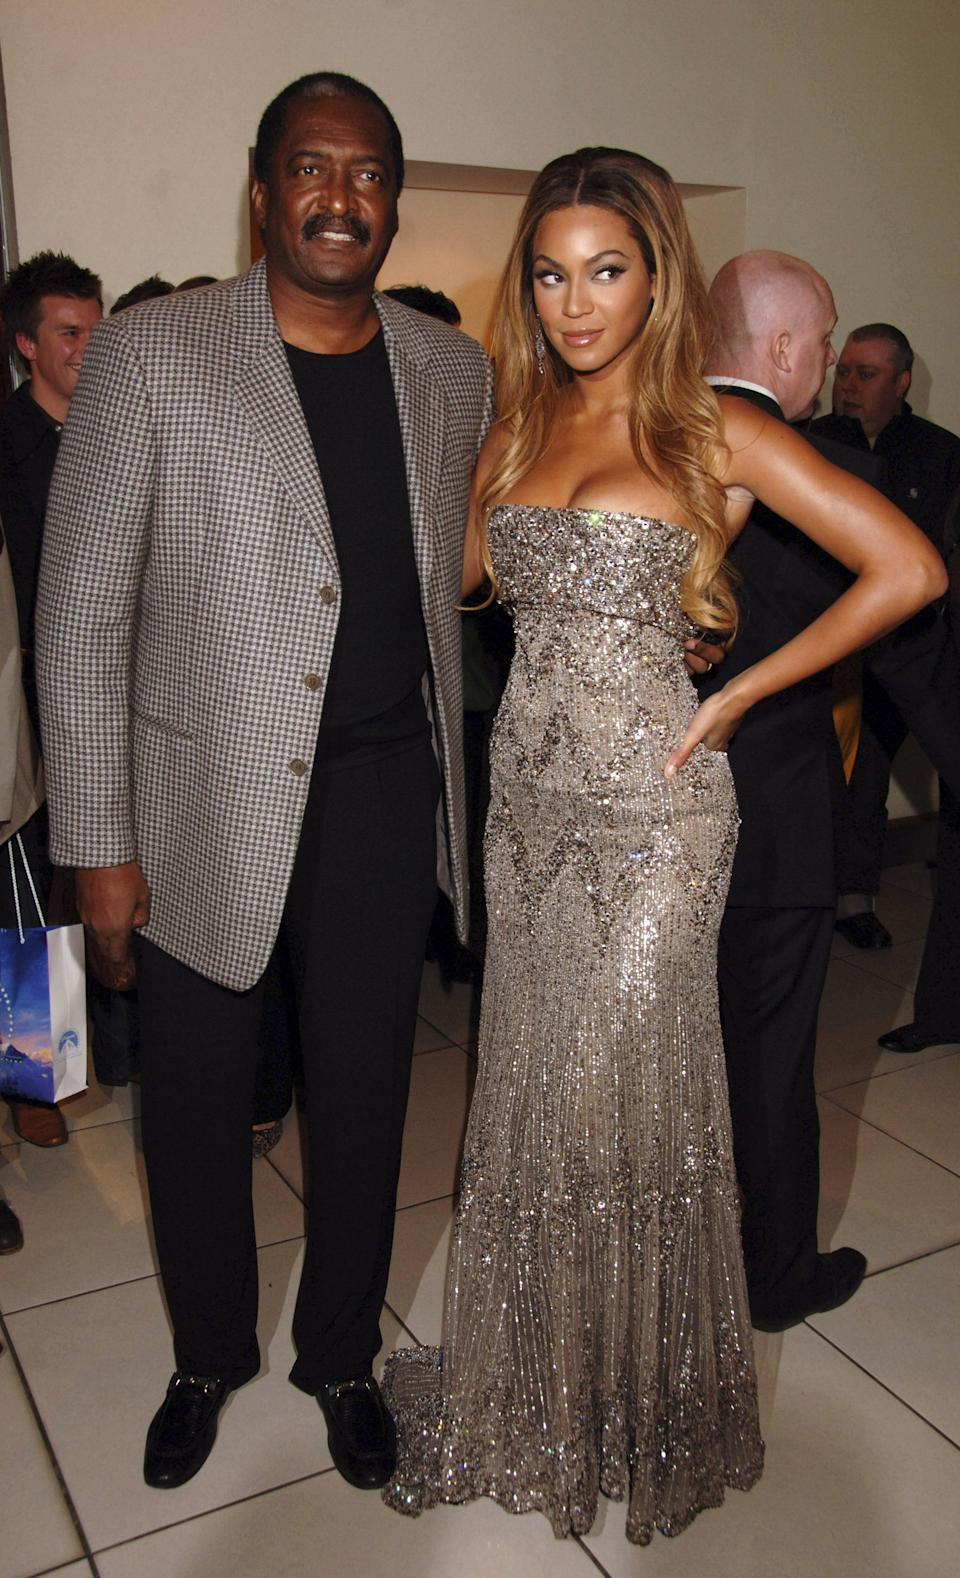 LONDON - JANUARY 21:  (EMBARGOED FOR PUBLICATION IN UK TABLOID NEWSPAPERS UNTIL 48 HOURS AFTER CREATE DATE AND TIME)  Beyonce Knowles and her father Matthew Knowles arrive at the UK film premiere of 'Dreamgirls,' held at Odeon Leicester Square on January 21, 2007 in London, England.  (Photo by Dave M. Benett/Getty Images)